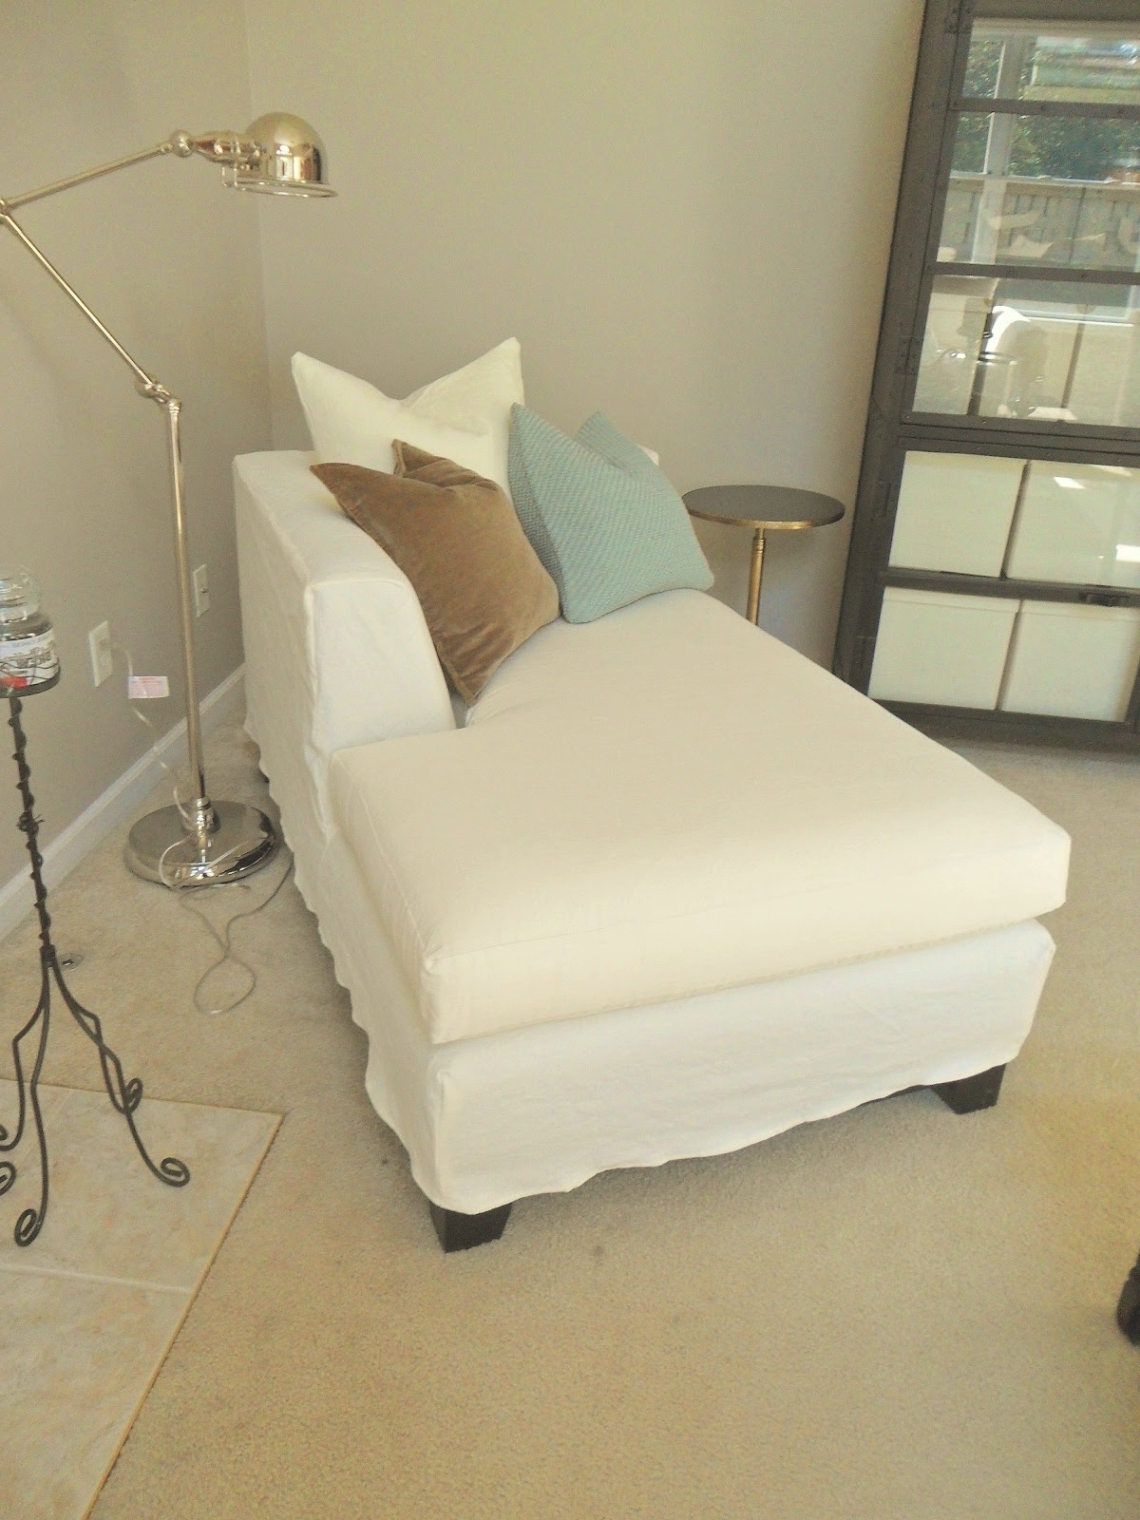 Brilliant Chaise Lounge Covers With Chaise Lounge Cover Lazulo With Most Recently Released Chaise Covers (View 5 of 15)